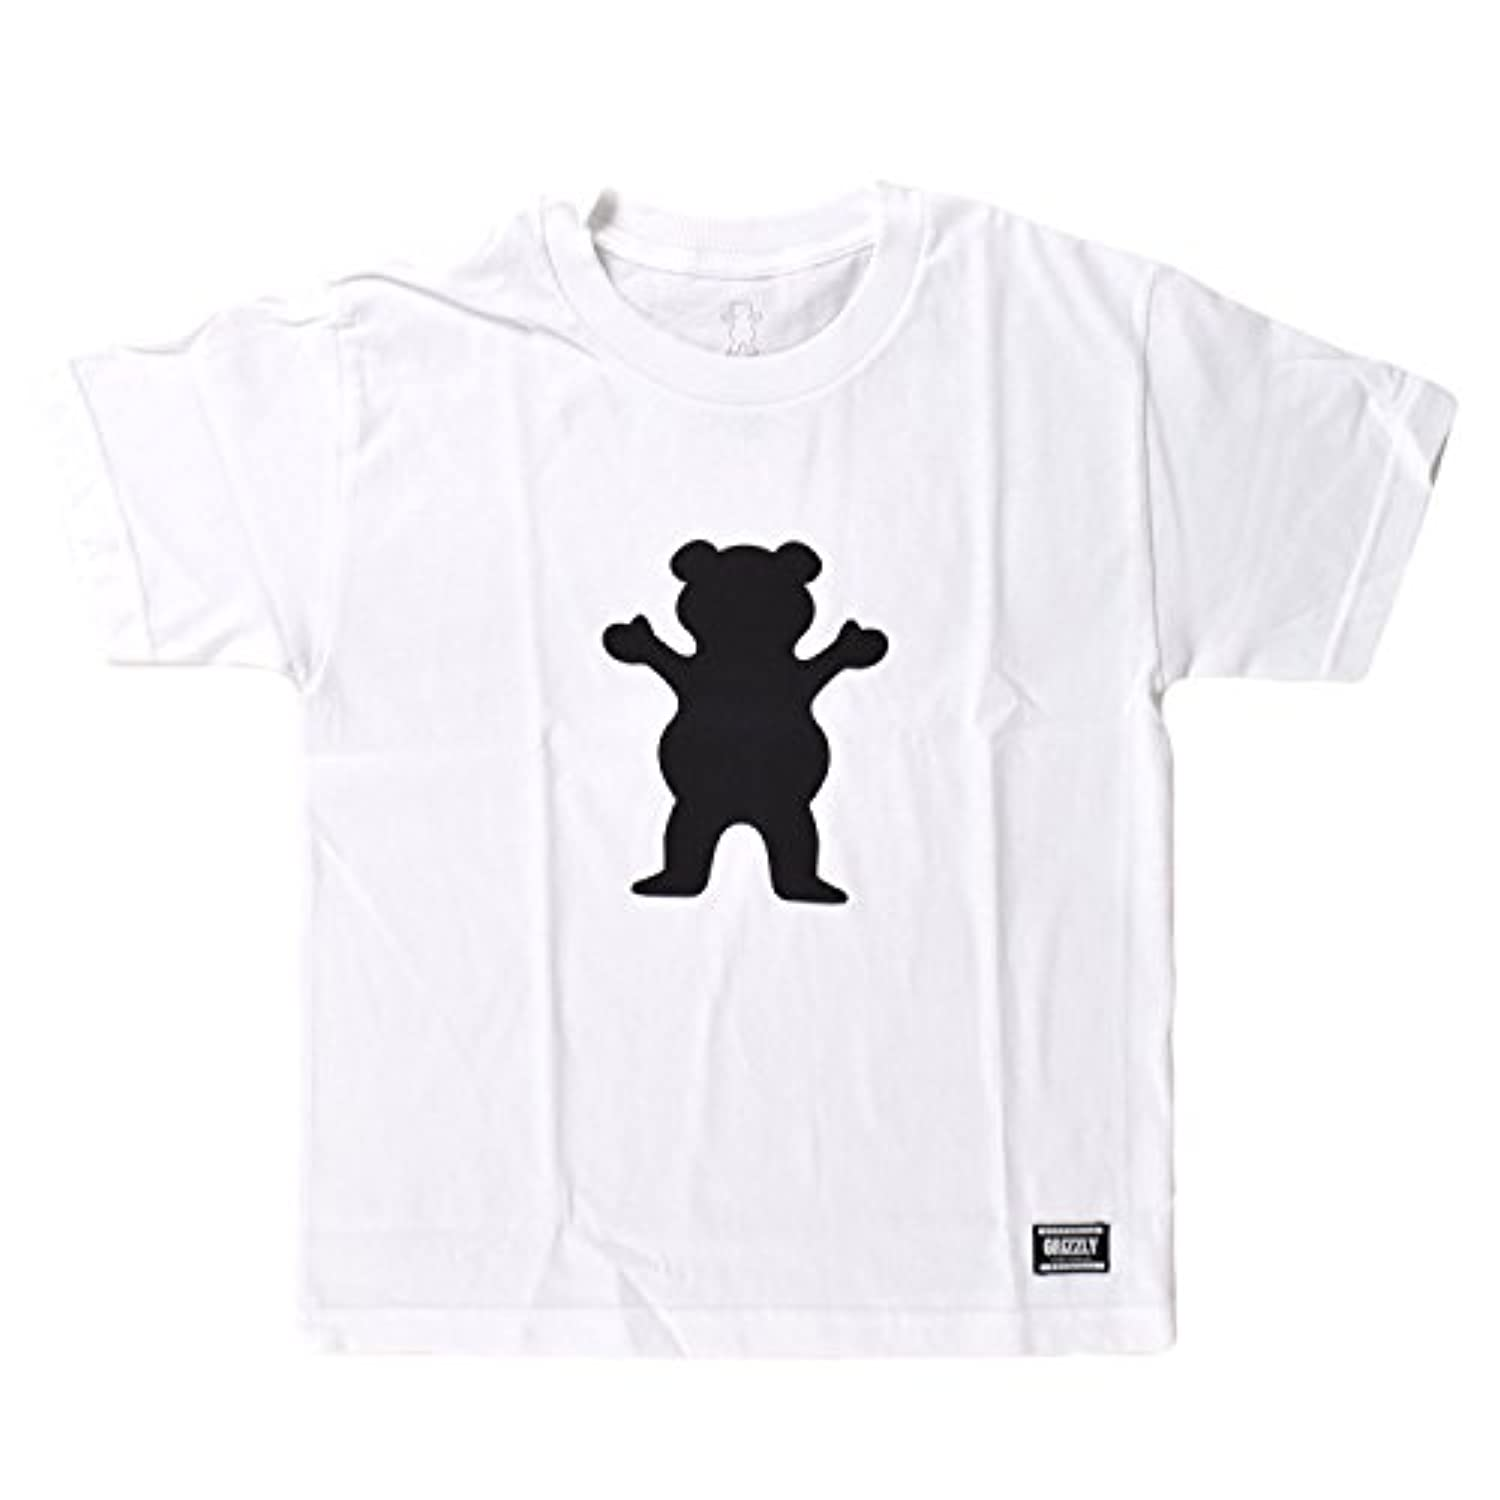 GRIZZLY グリズリー キッズ 半袖 Tシャツ VIGR181Y1